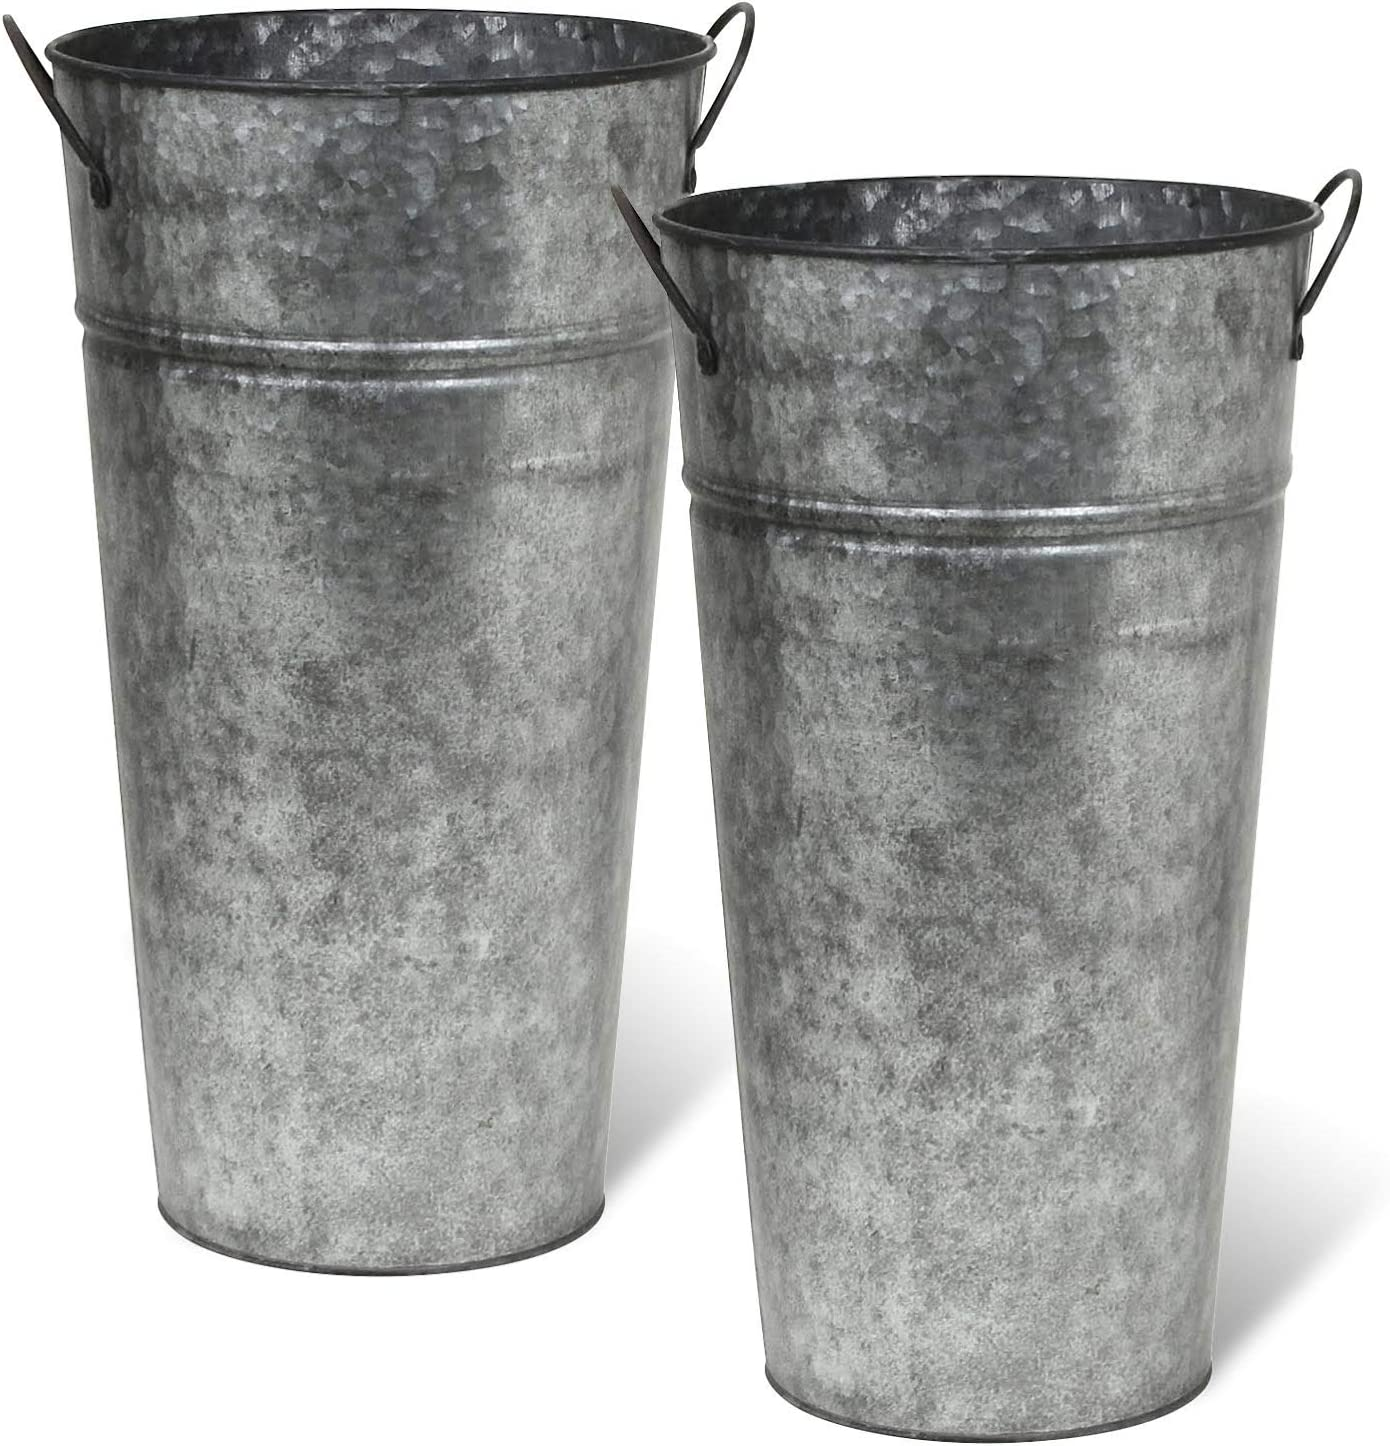 Rustic Metal 13 Inch Galvanized Flower Vase – Set of 2 – French Bucket – Farmhouse Style – Perfect for Fresh and Dried Floral Arrangements for Home and Weddings Pewter Gray